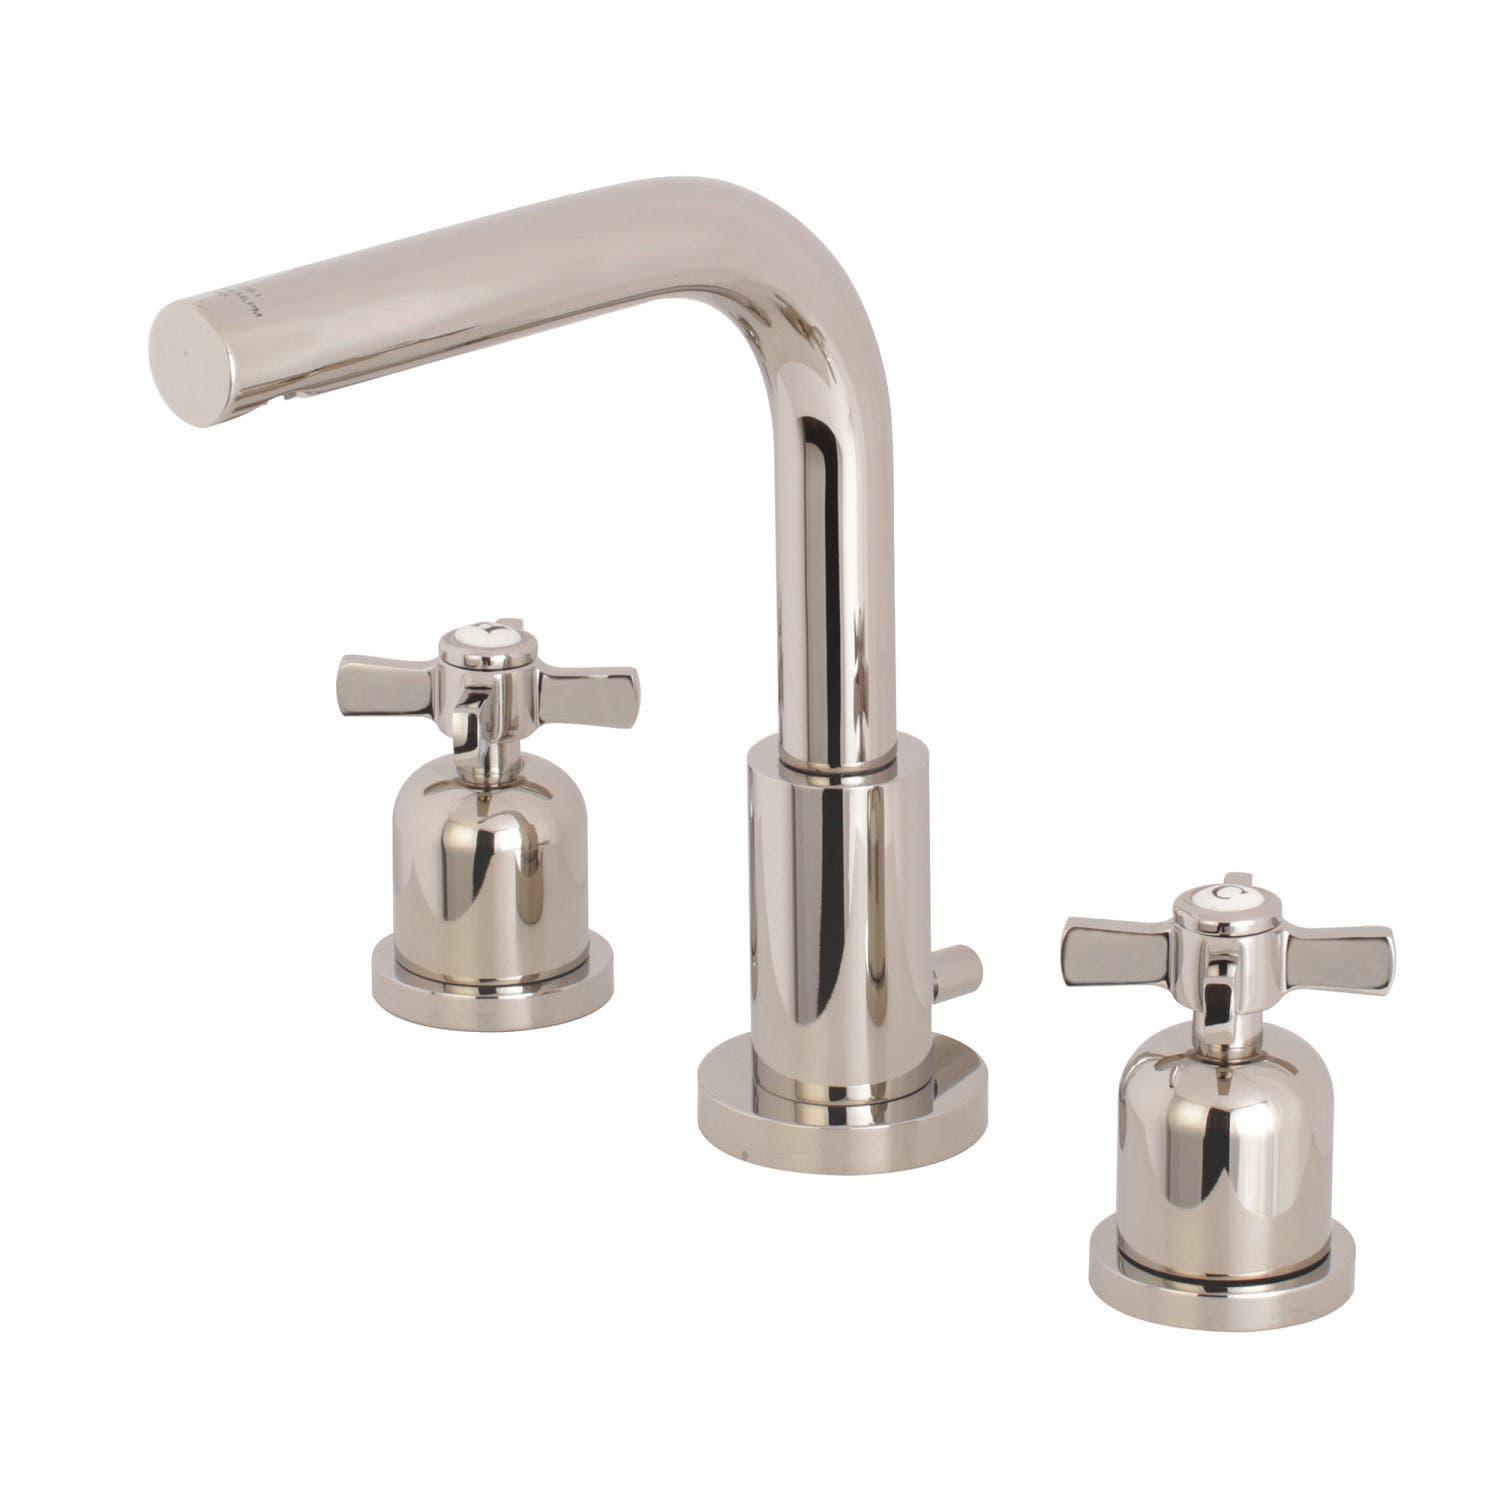 Fauceture Fsc8959zx 8 Inch Widespread Lavatory Faucet Polished Nickel